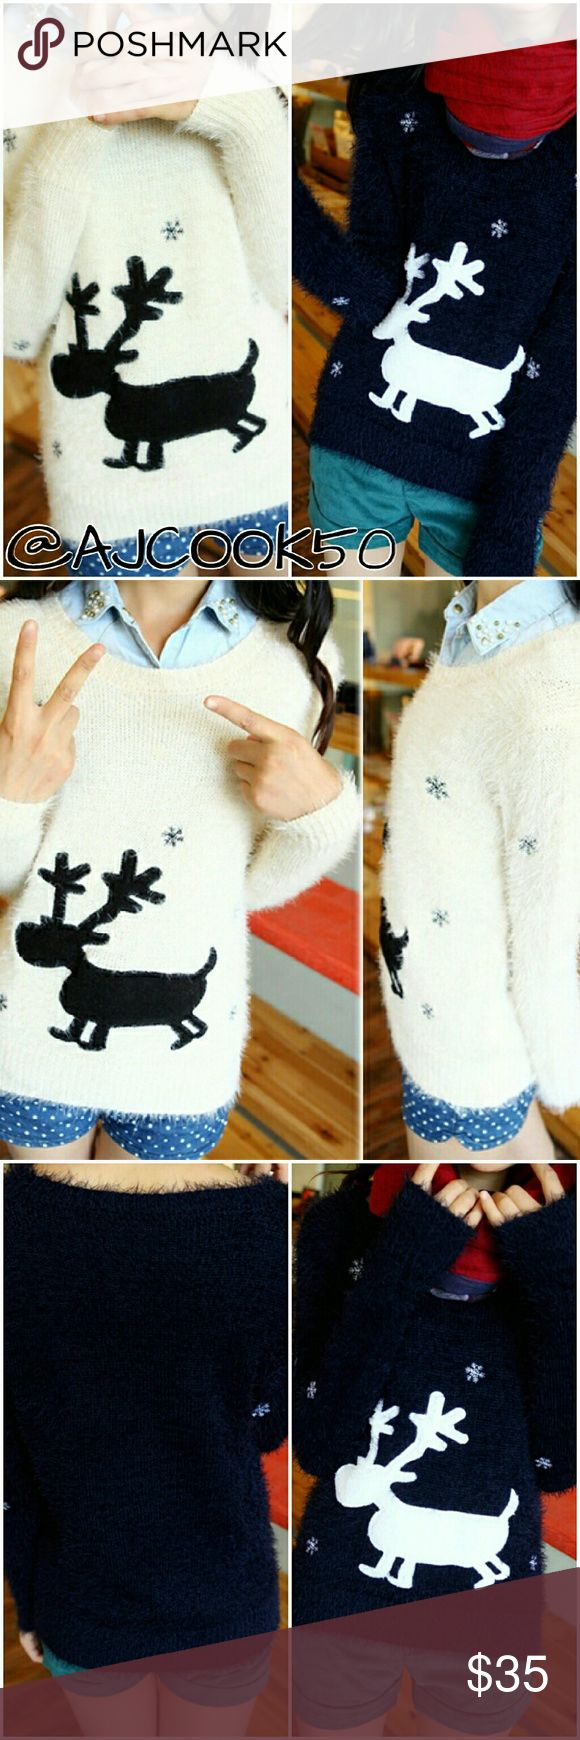 """🎉HP🎉Reindeer fuzzy holiday sweater Get the Taylor Swift look with this super cute fuzzy knit pullover sweater that is a must have for the holidays! It will keep you warm while still looking chic and spreading your holiday day cheer. It features a reindeer and snowflake print. One size fits: XS - M it has spandex material so stretches or can fit loose. Approx measurements  Bust: 37"""" Shoulder: 14"""" Sleeve: 21"""" Length: 24"""" Sweaters Crew & Scoop Necks"""